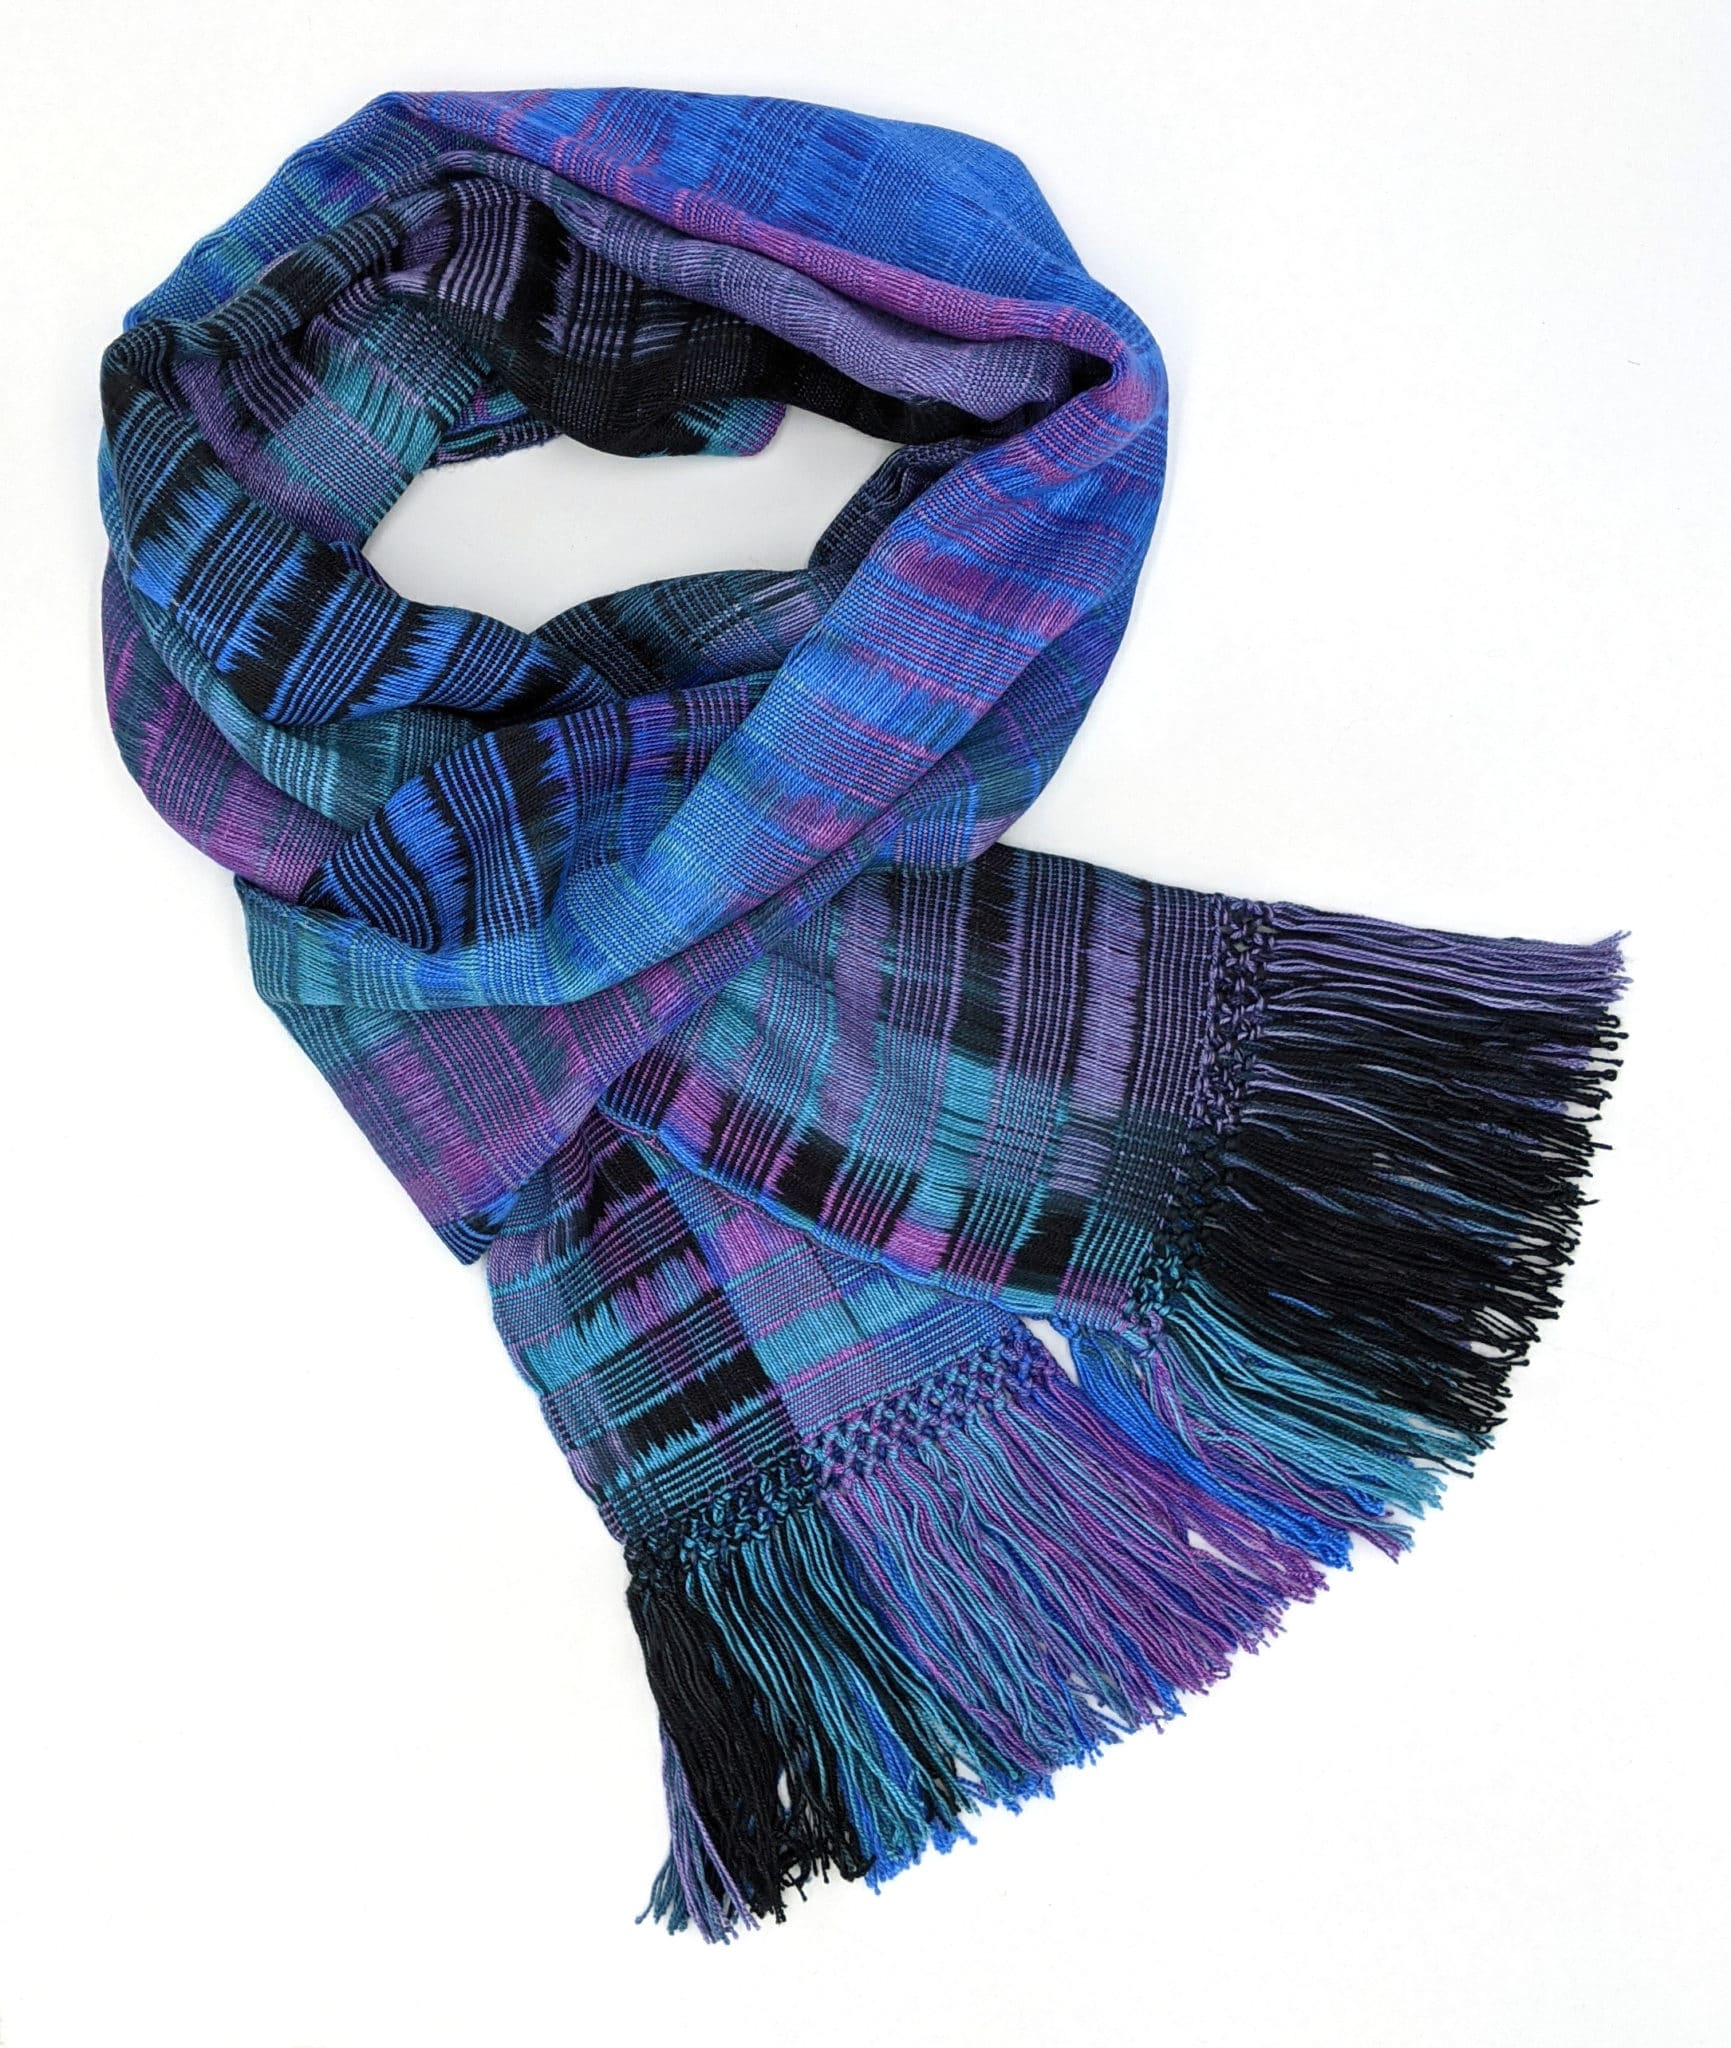 Blue, Teal, Black and Purple Lightweight Bamboo Open-Weave Handwoven Scarf 8 x 68